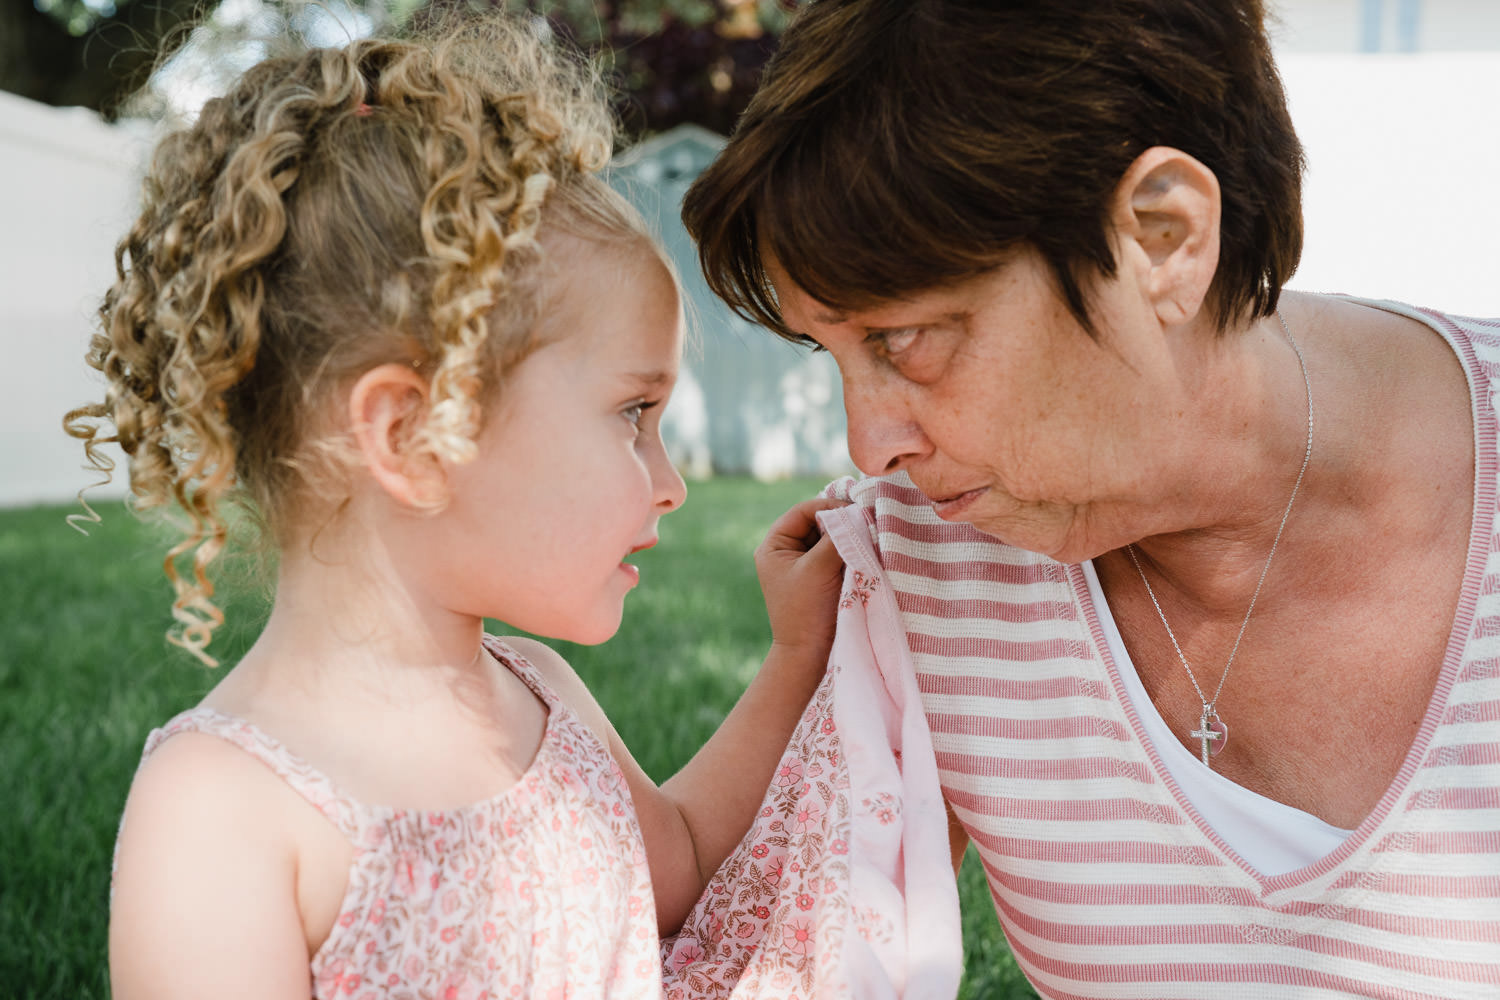 A grandmother and granddaughter look in each others' eyes.